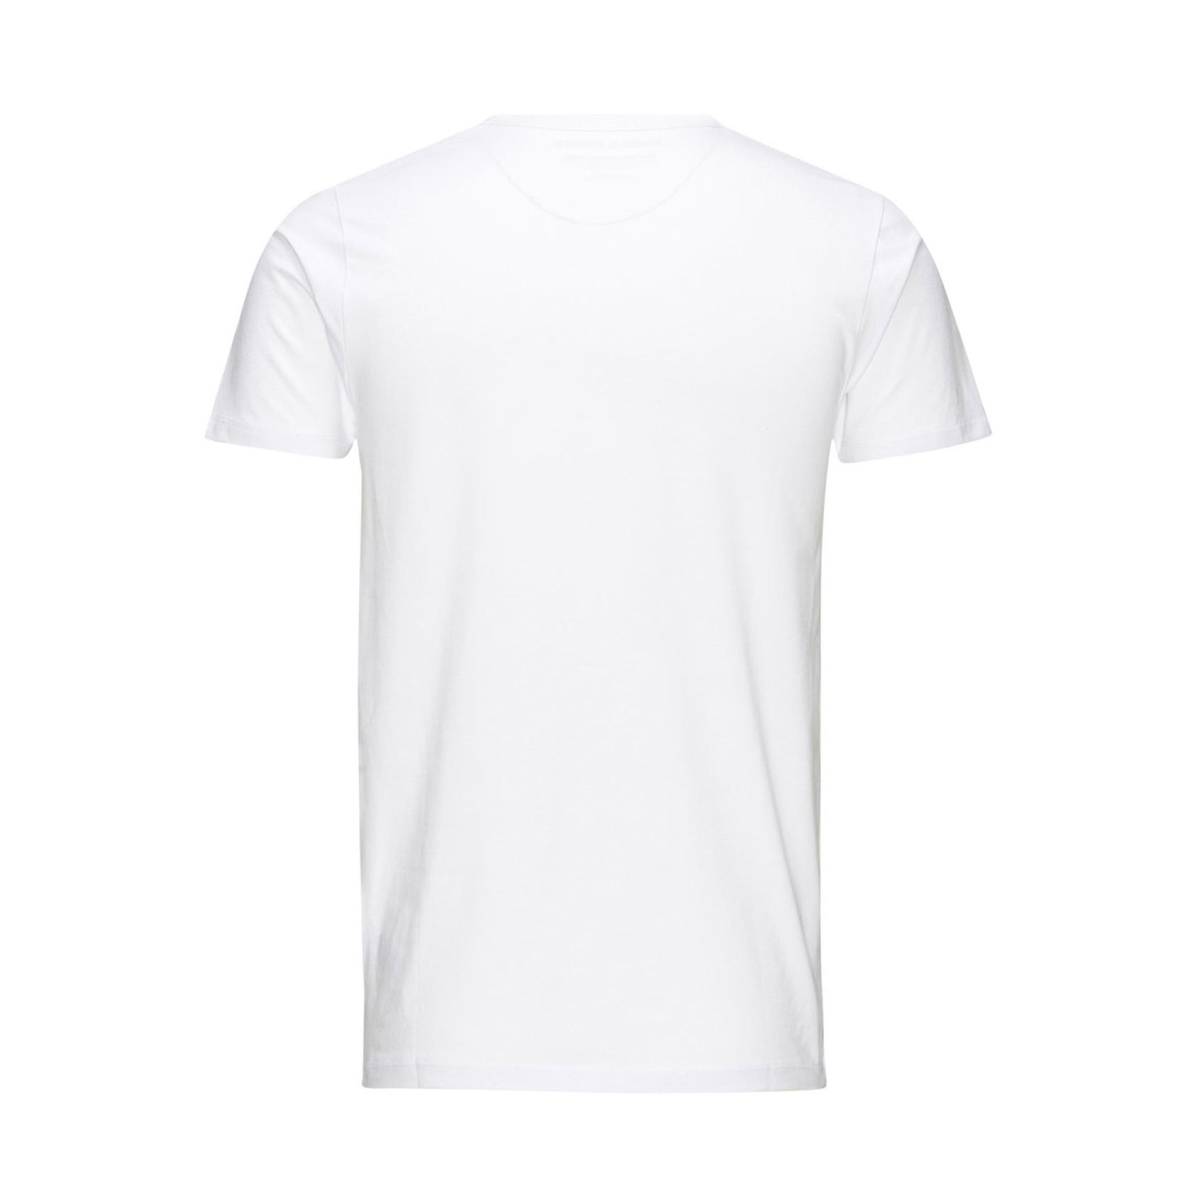 basic o-neck tee 12058529 jack & jones t-shirt opt. white